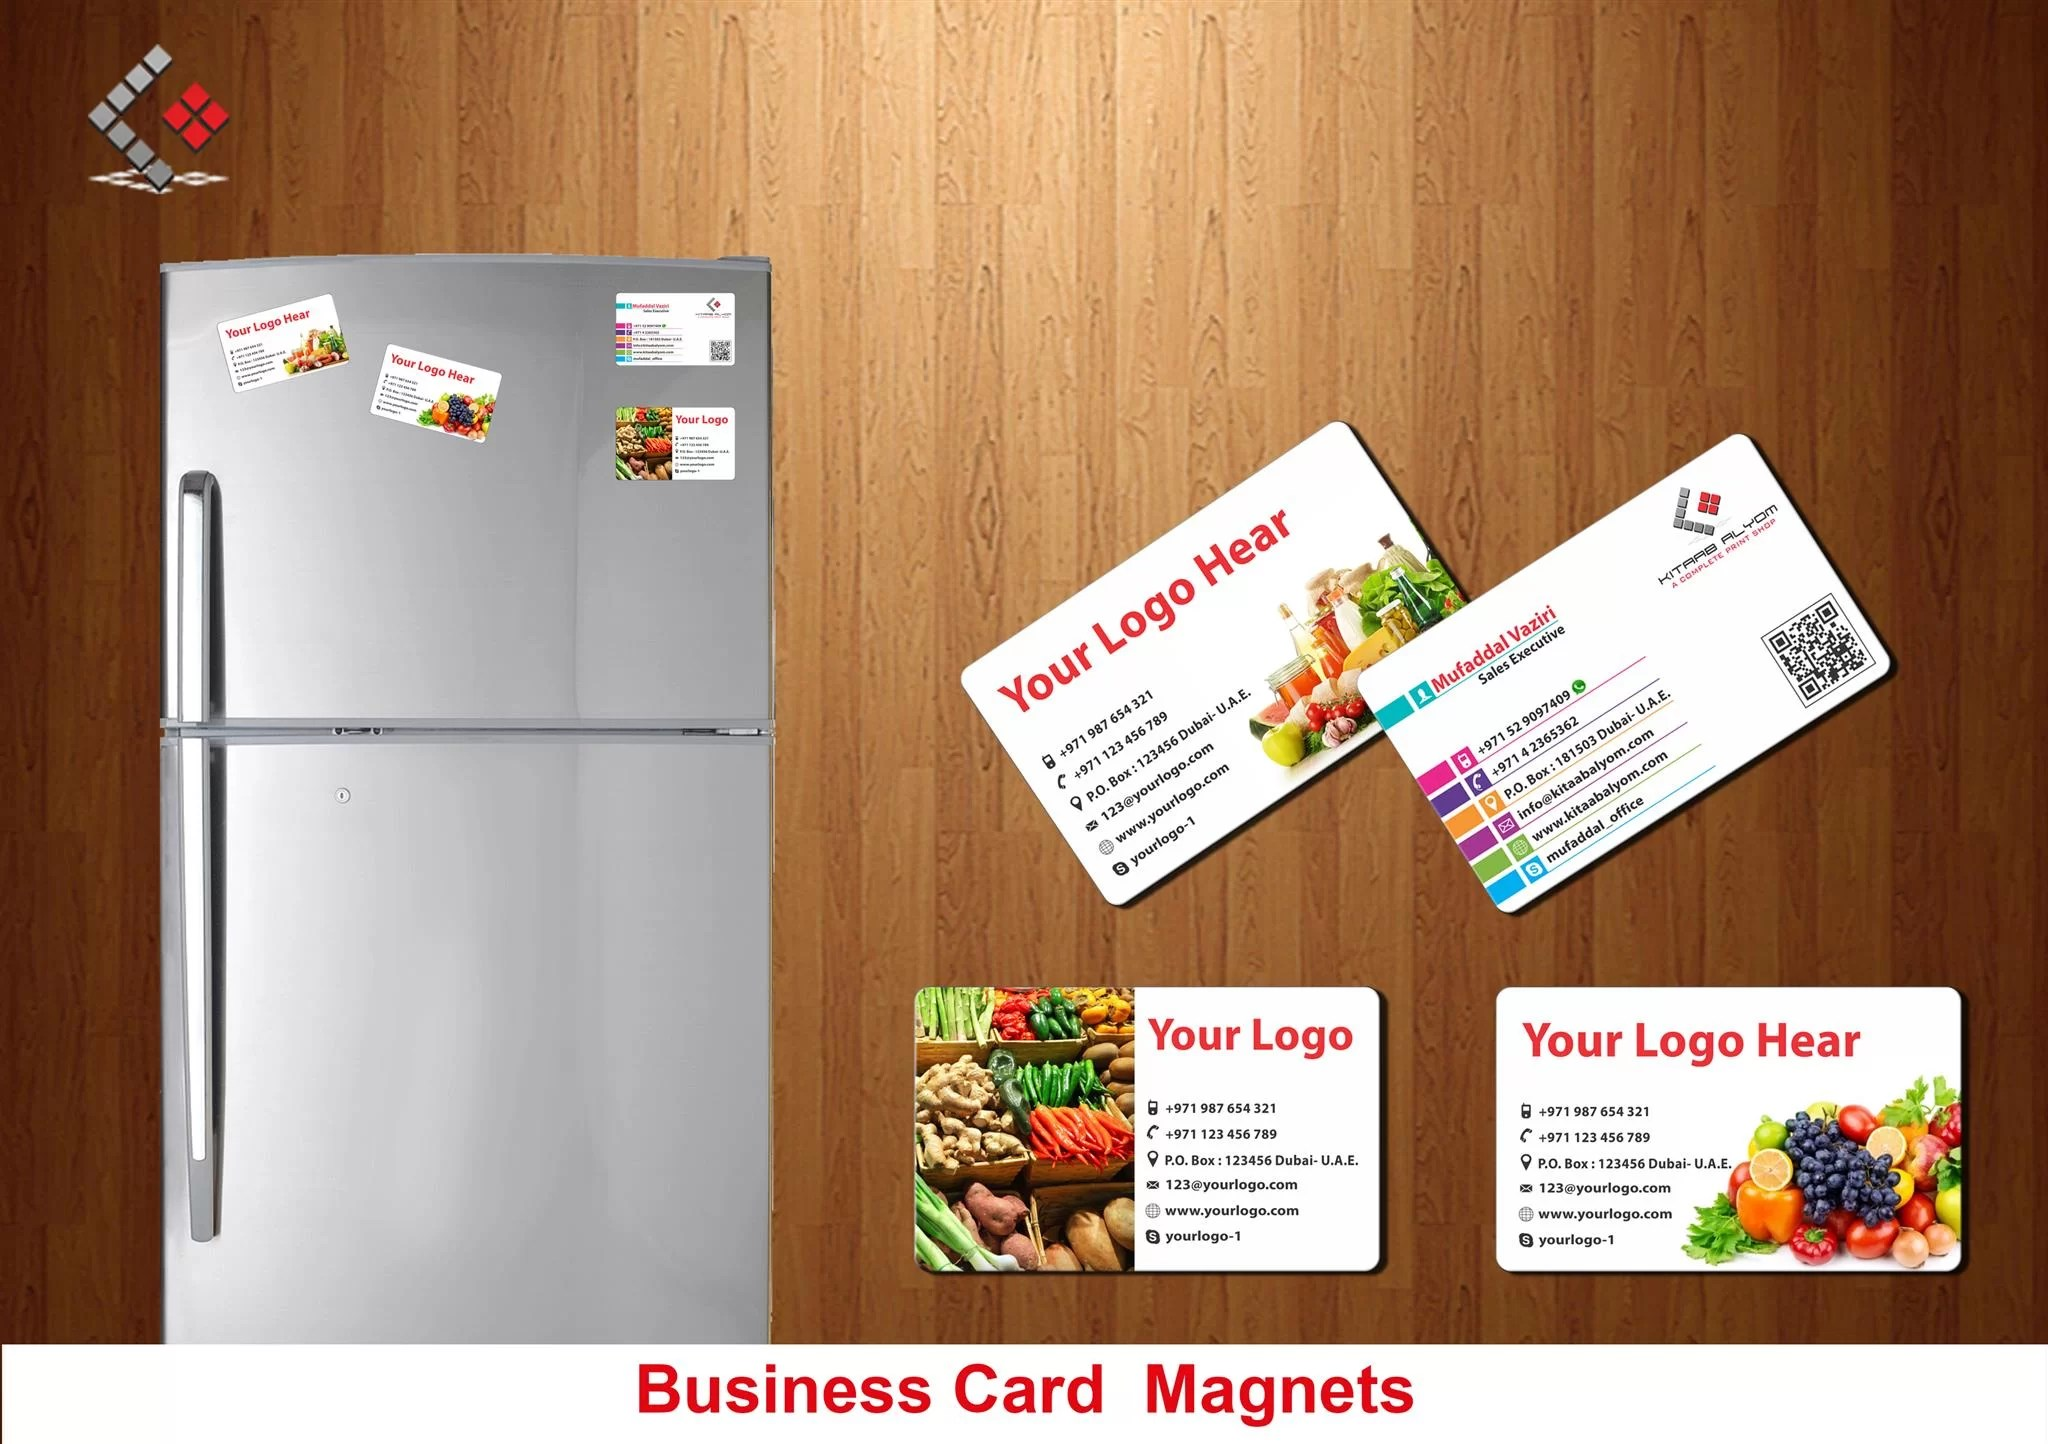 Business Card Magnets, Magnets Promotional Items in Dubai & abu Dhabi